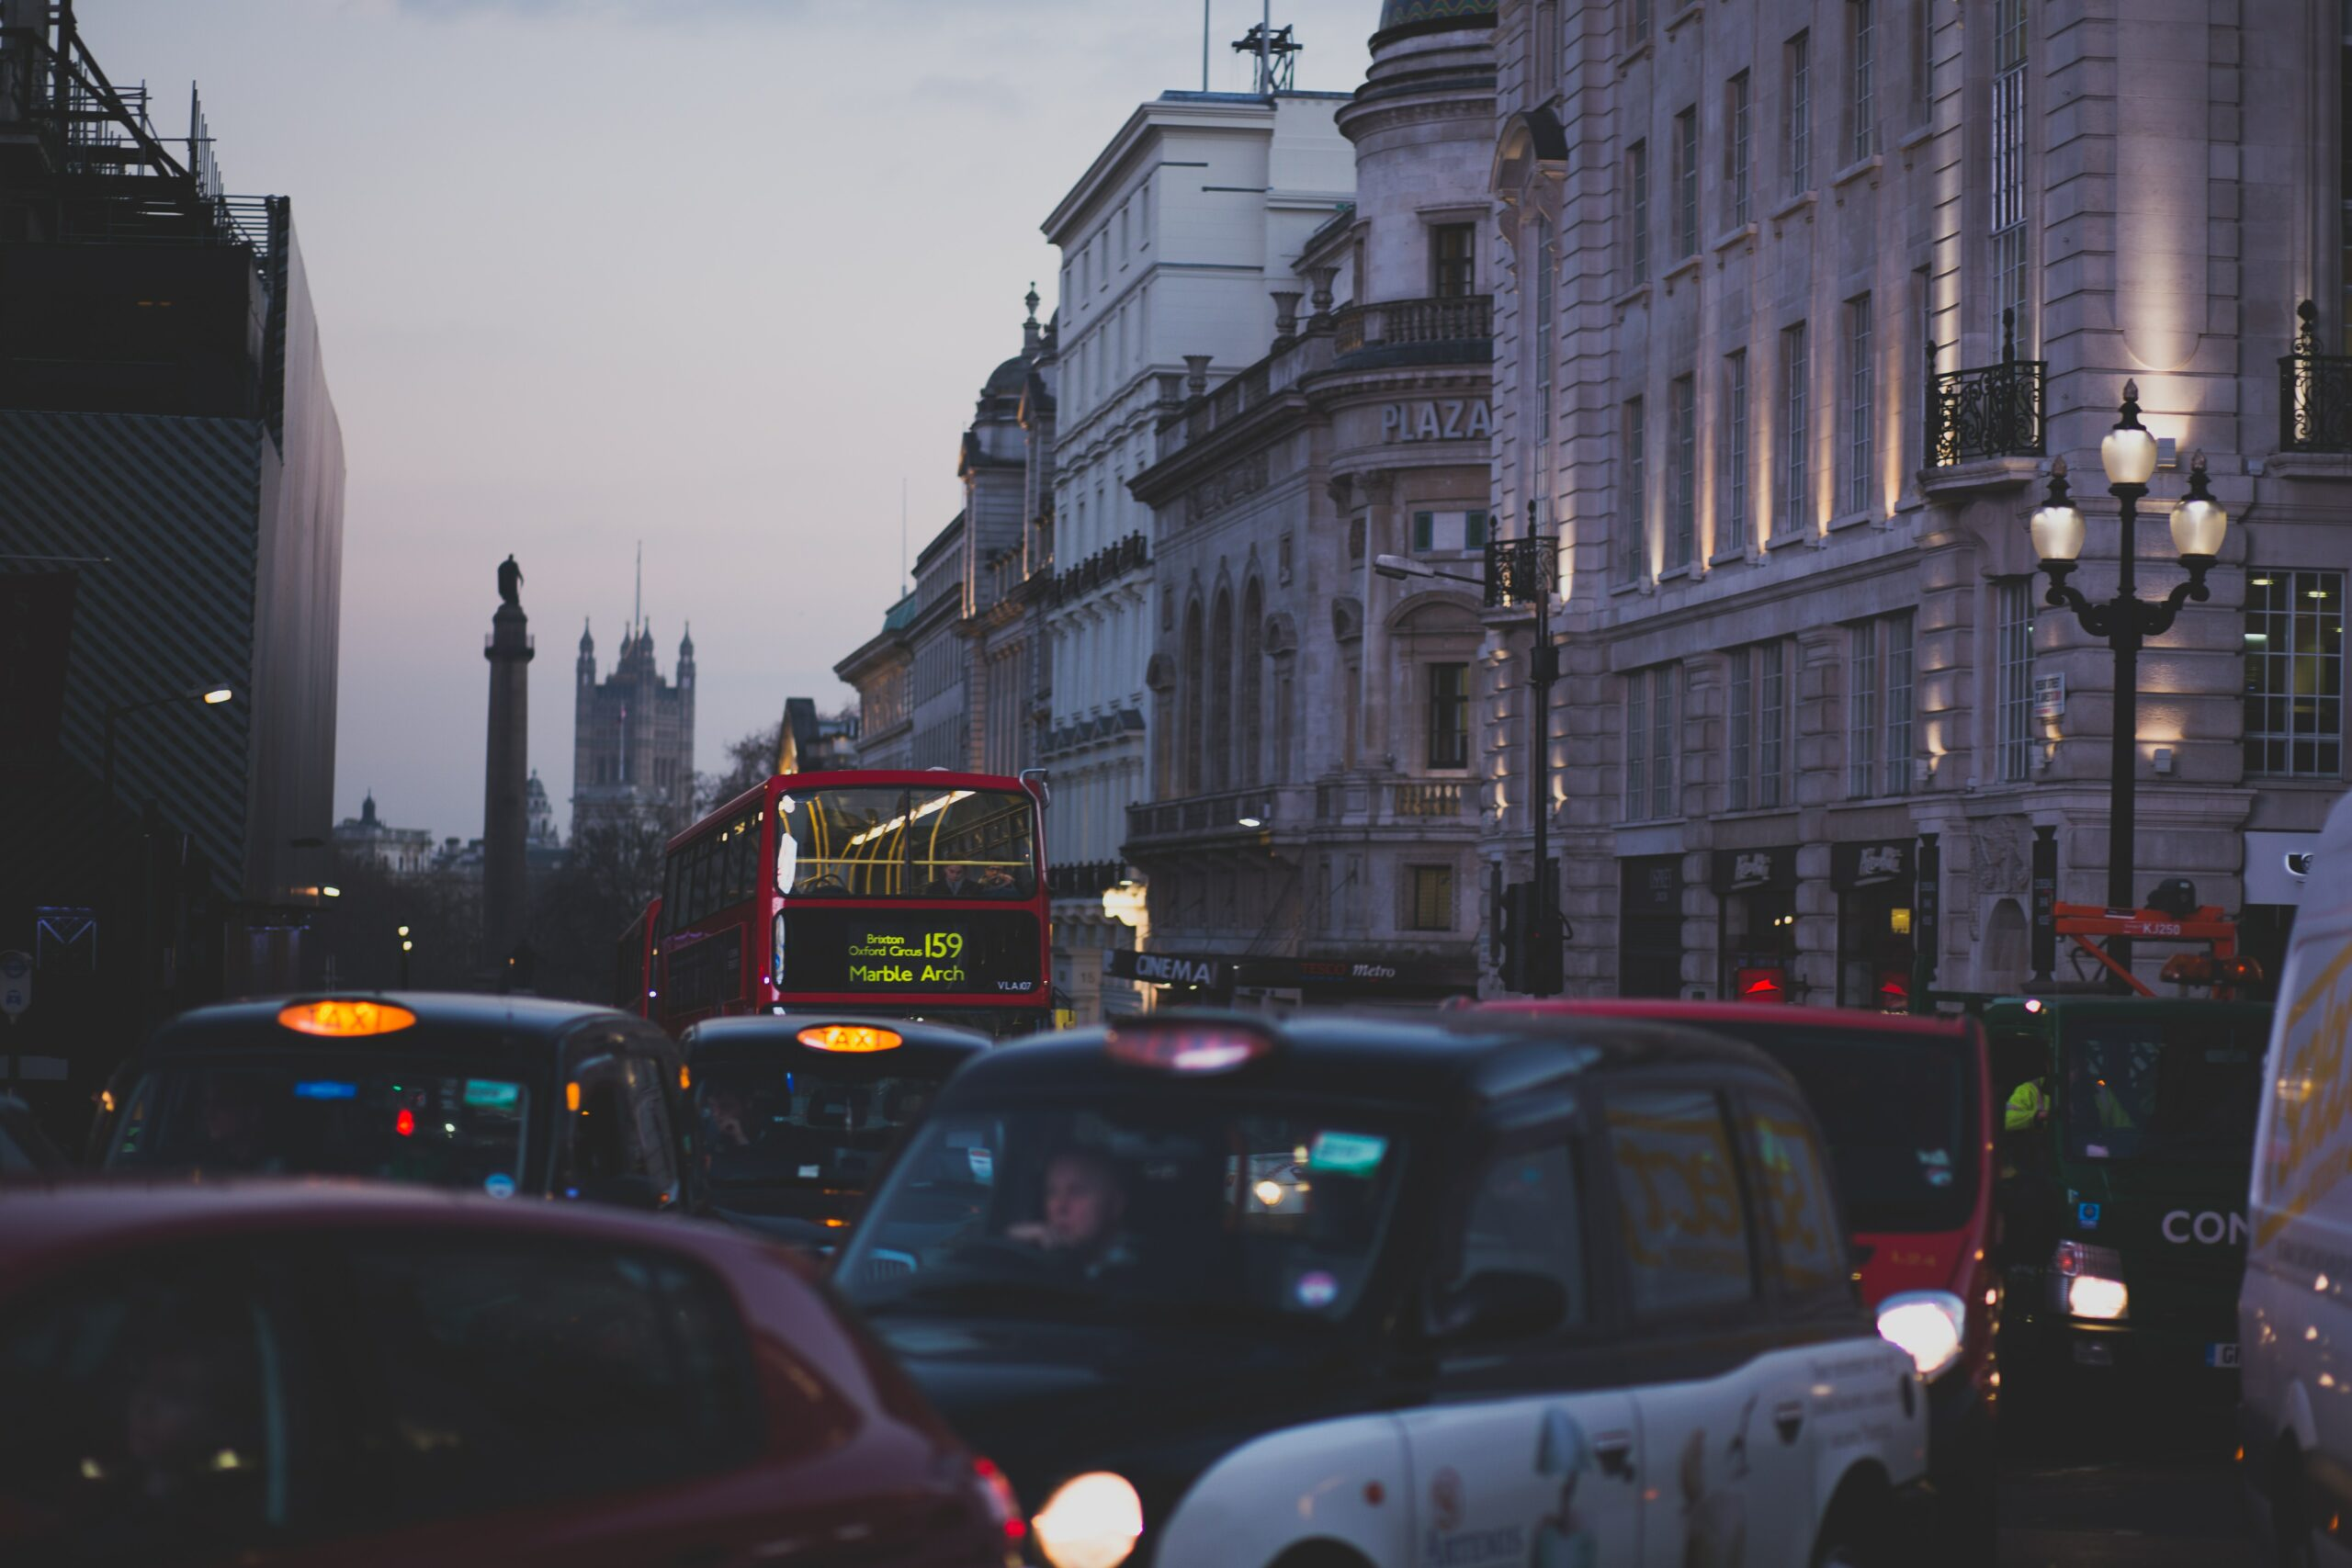 Cars and buses on busy London street at dusk.